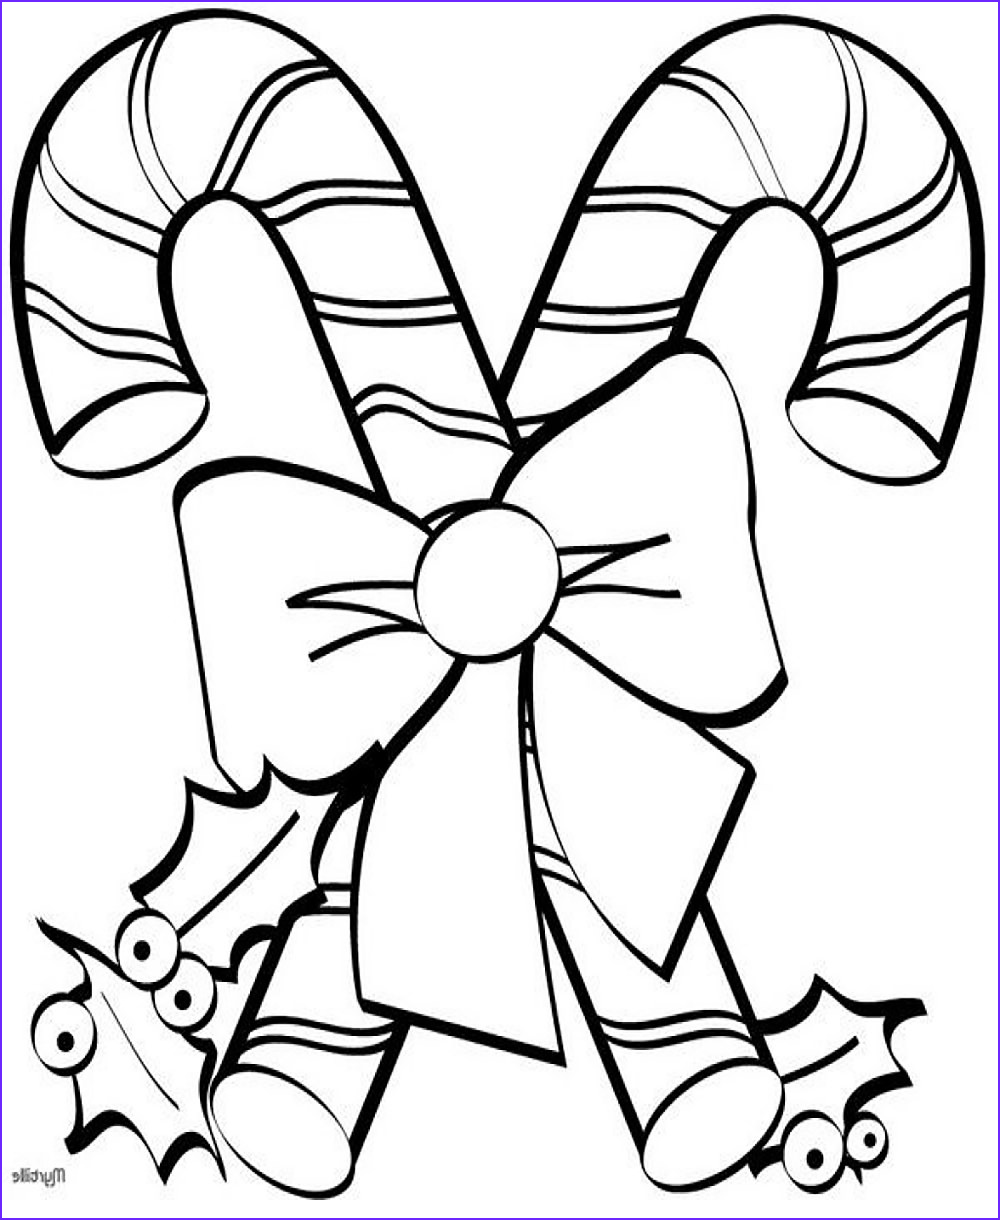 Christian Coloring Pages Luxury Gallery Free Christian Coloring Pages for Kids and Young Children